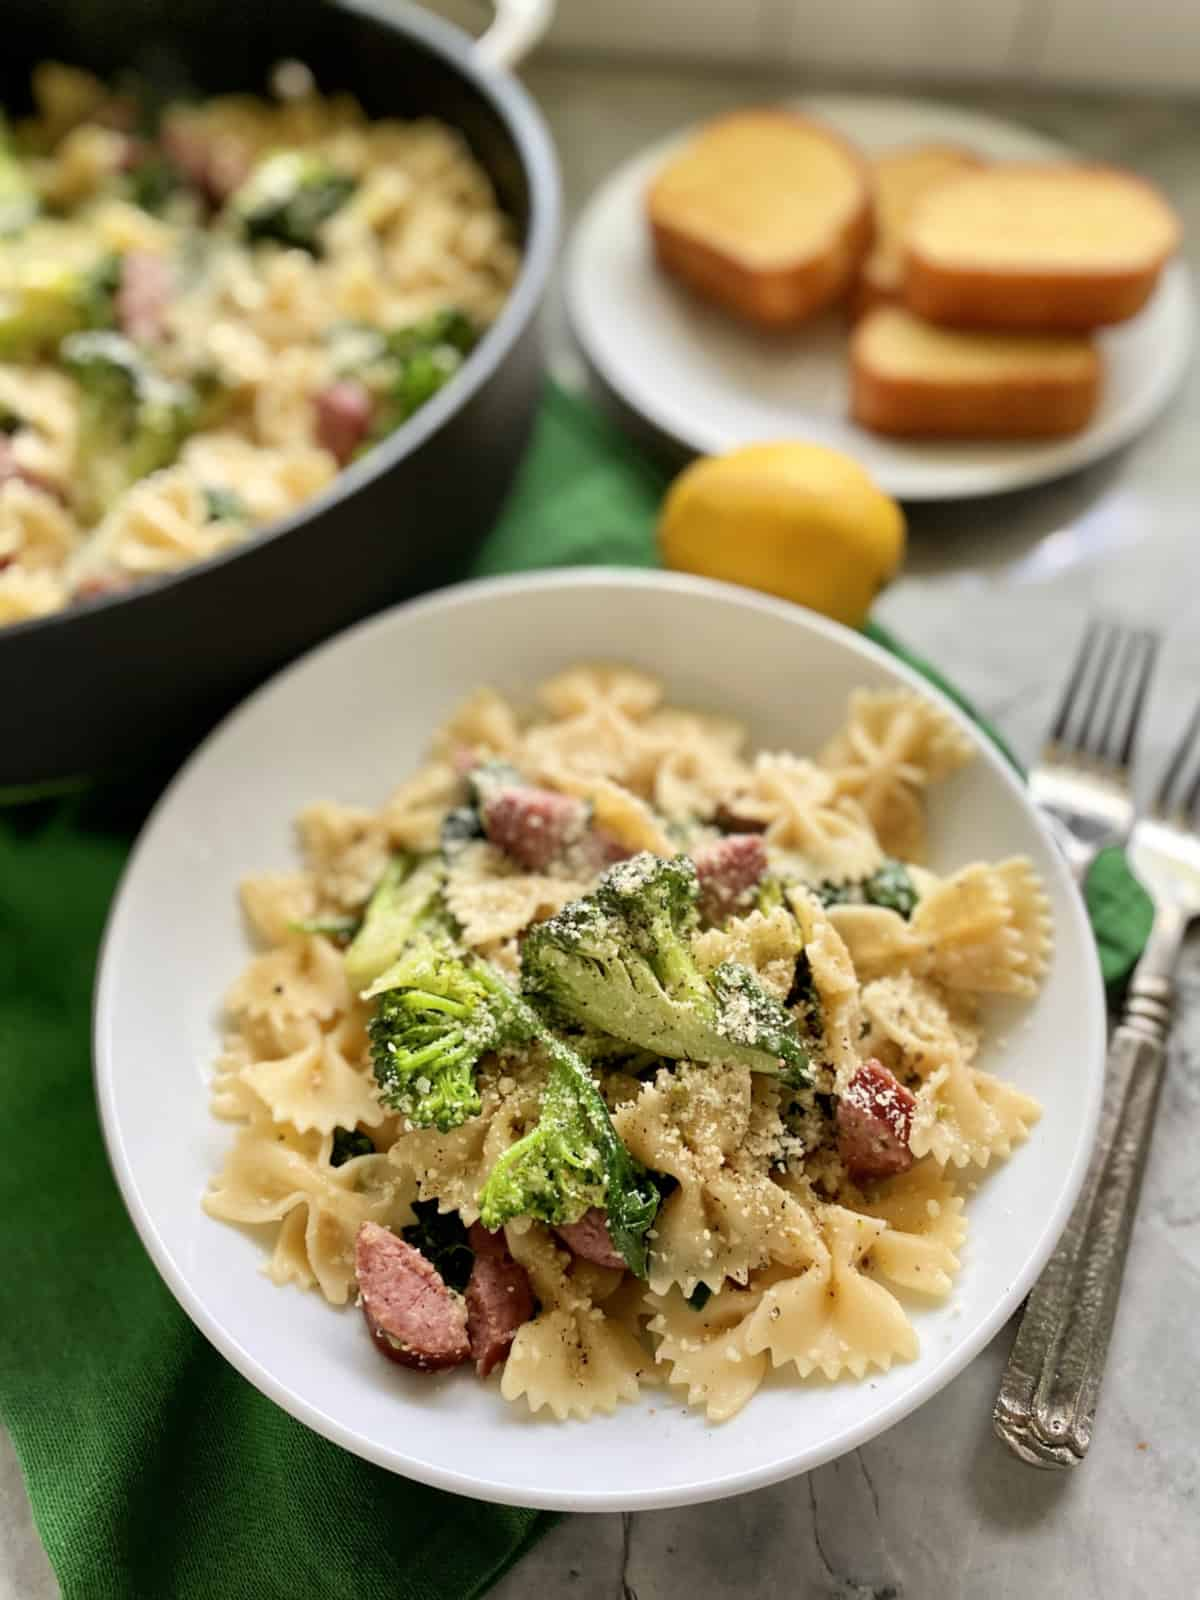 White shallow bowl filled with bow tie pasta, cheese, broccoli, and kielbasa.